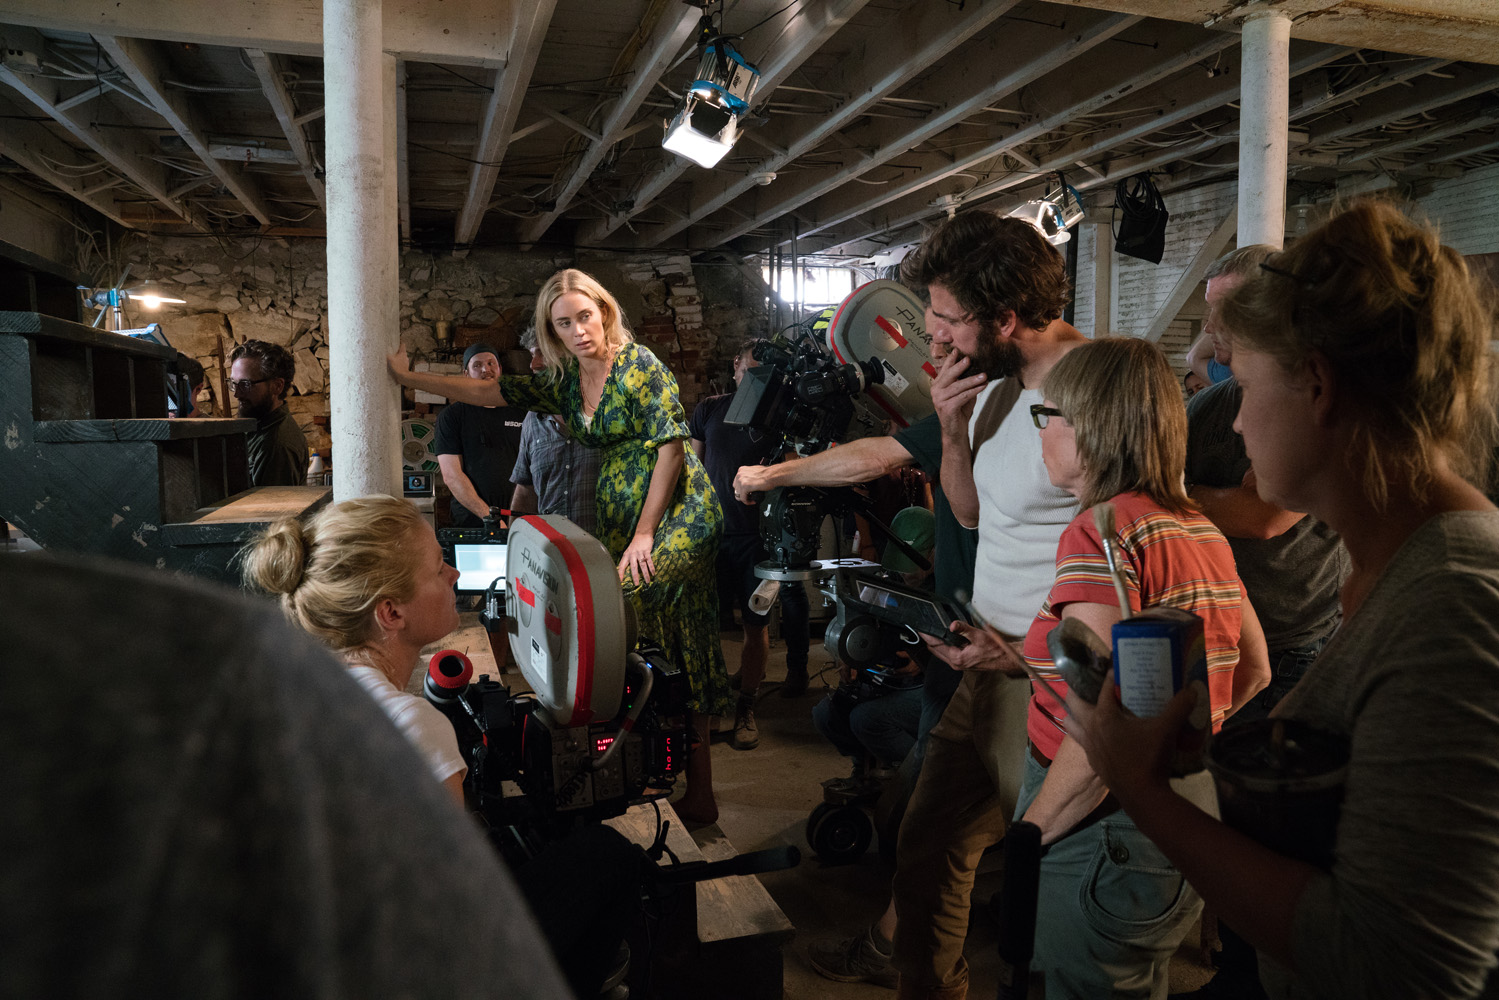 Left to right: Director of Photography Charlotte Bruus Christensen, Emily Blunt and Director/Writer/Executive Producer John Krasinski on the set of A QUIET PLACE, from Paramount Pictures.